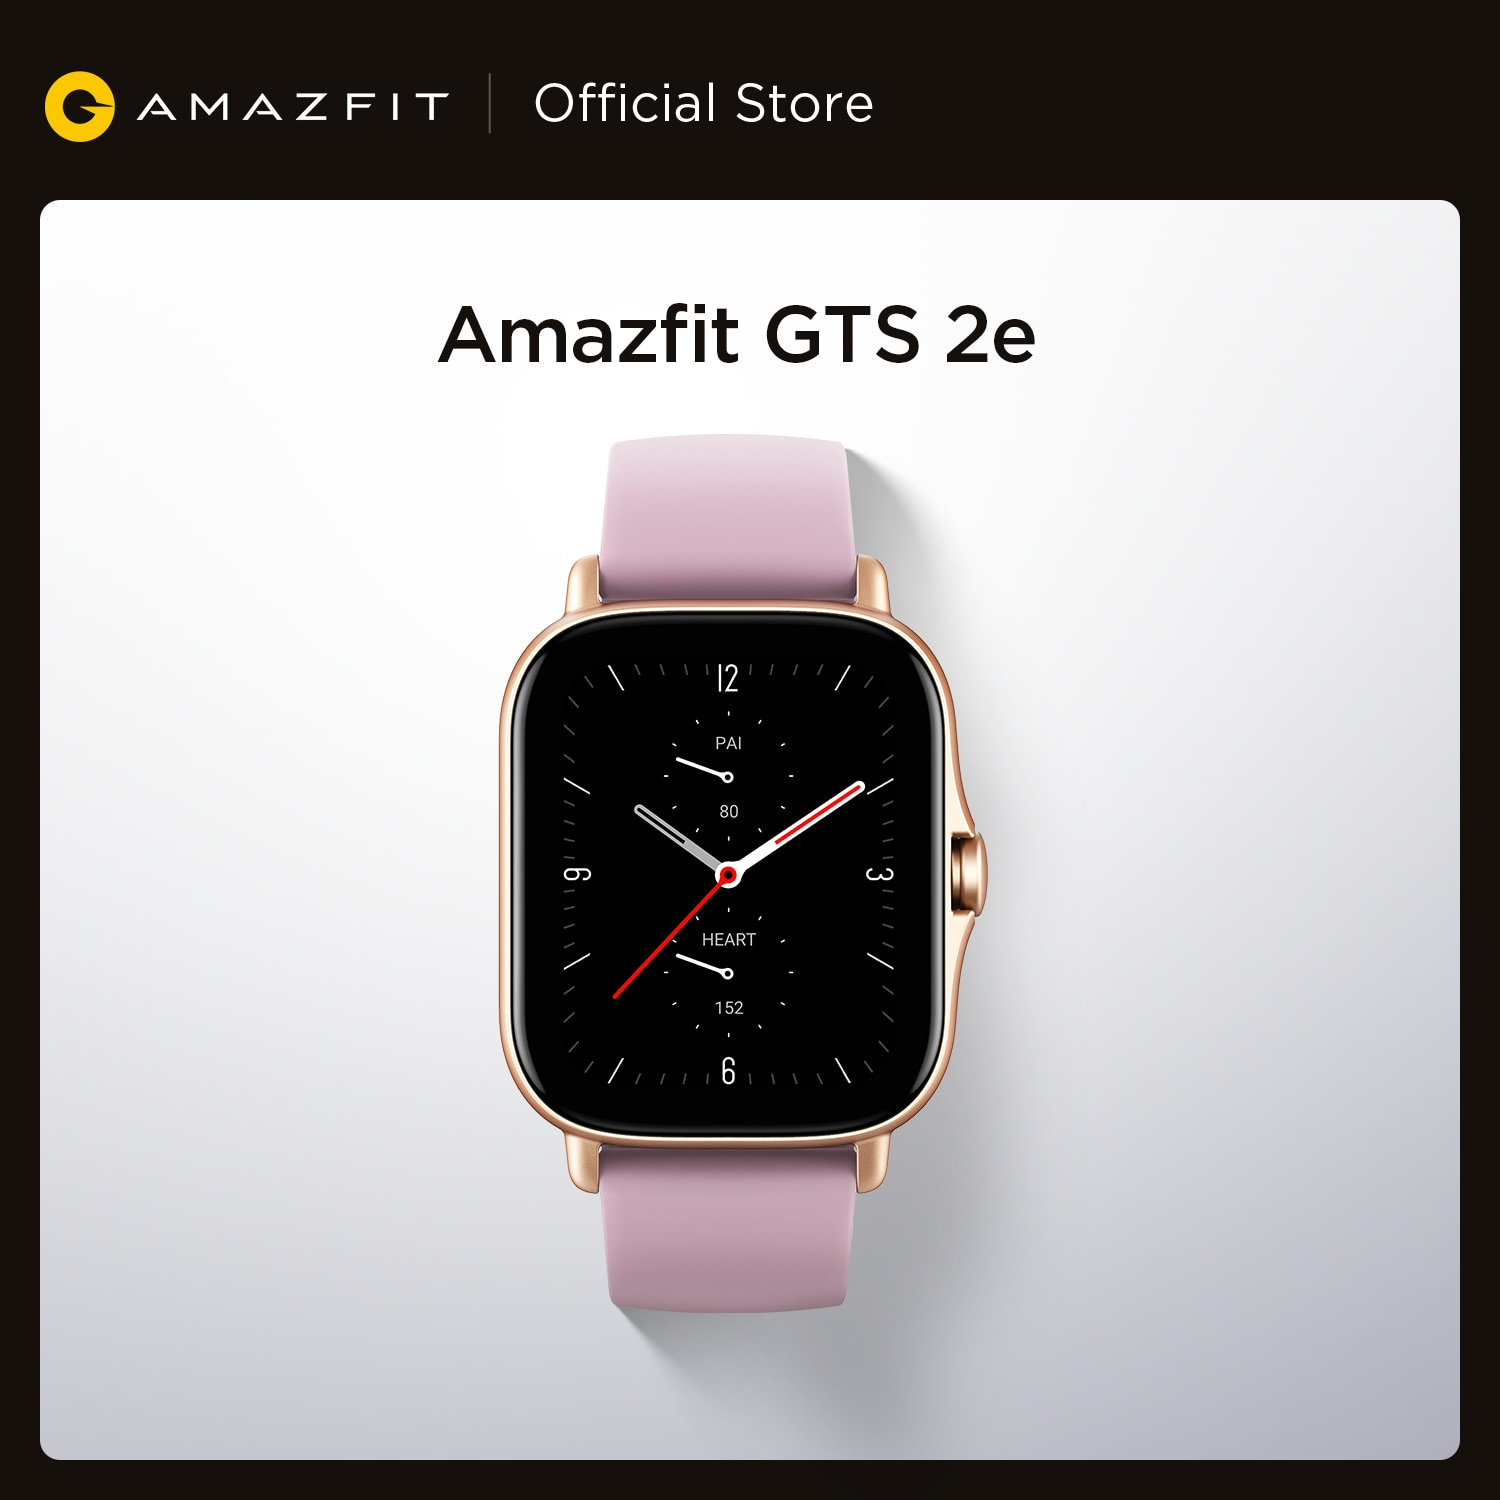 Promo New Original Global Amazfit GTS 2e Smartwatch 24 Days Battery Life Alexa Built-in 5 ATM  Smart Watch for Android iOS Phone